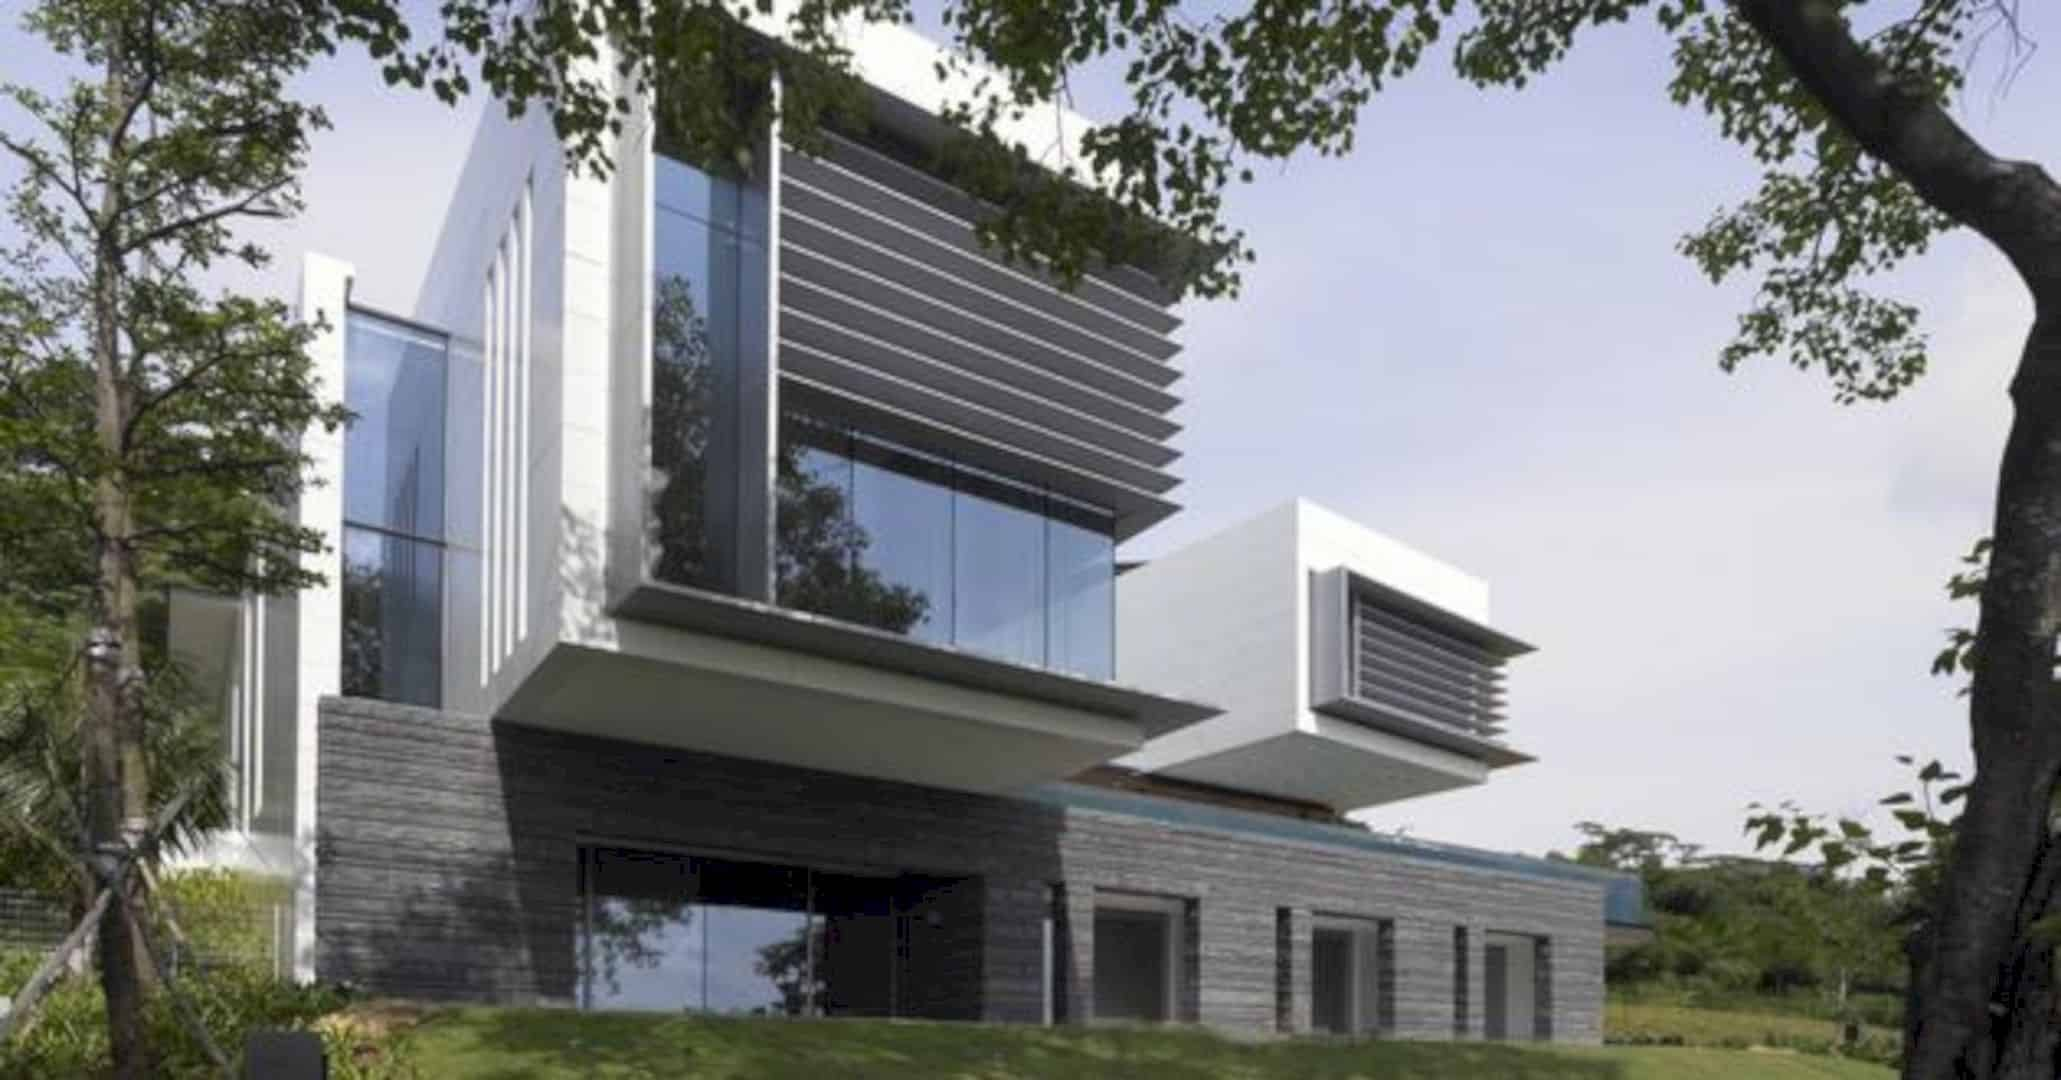 Lakeshore View House A Modern Two Story Home With Suspended Pool 3